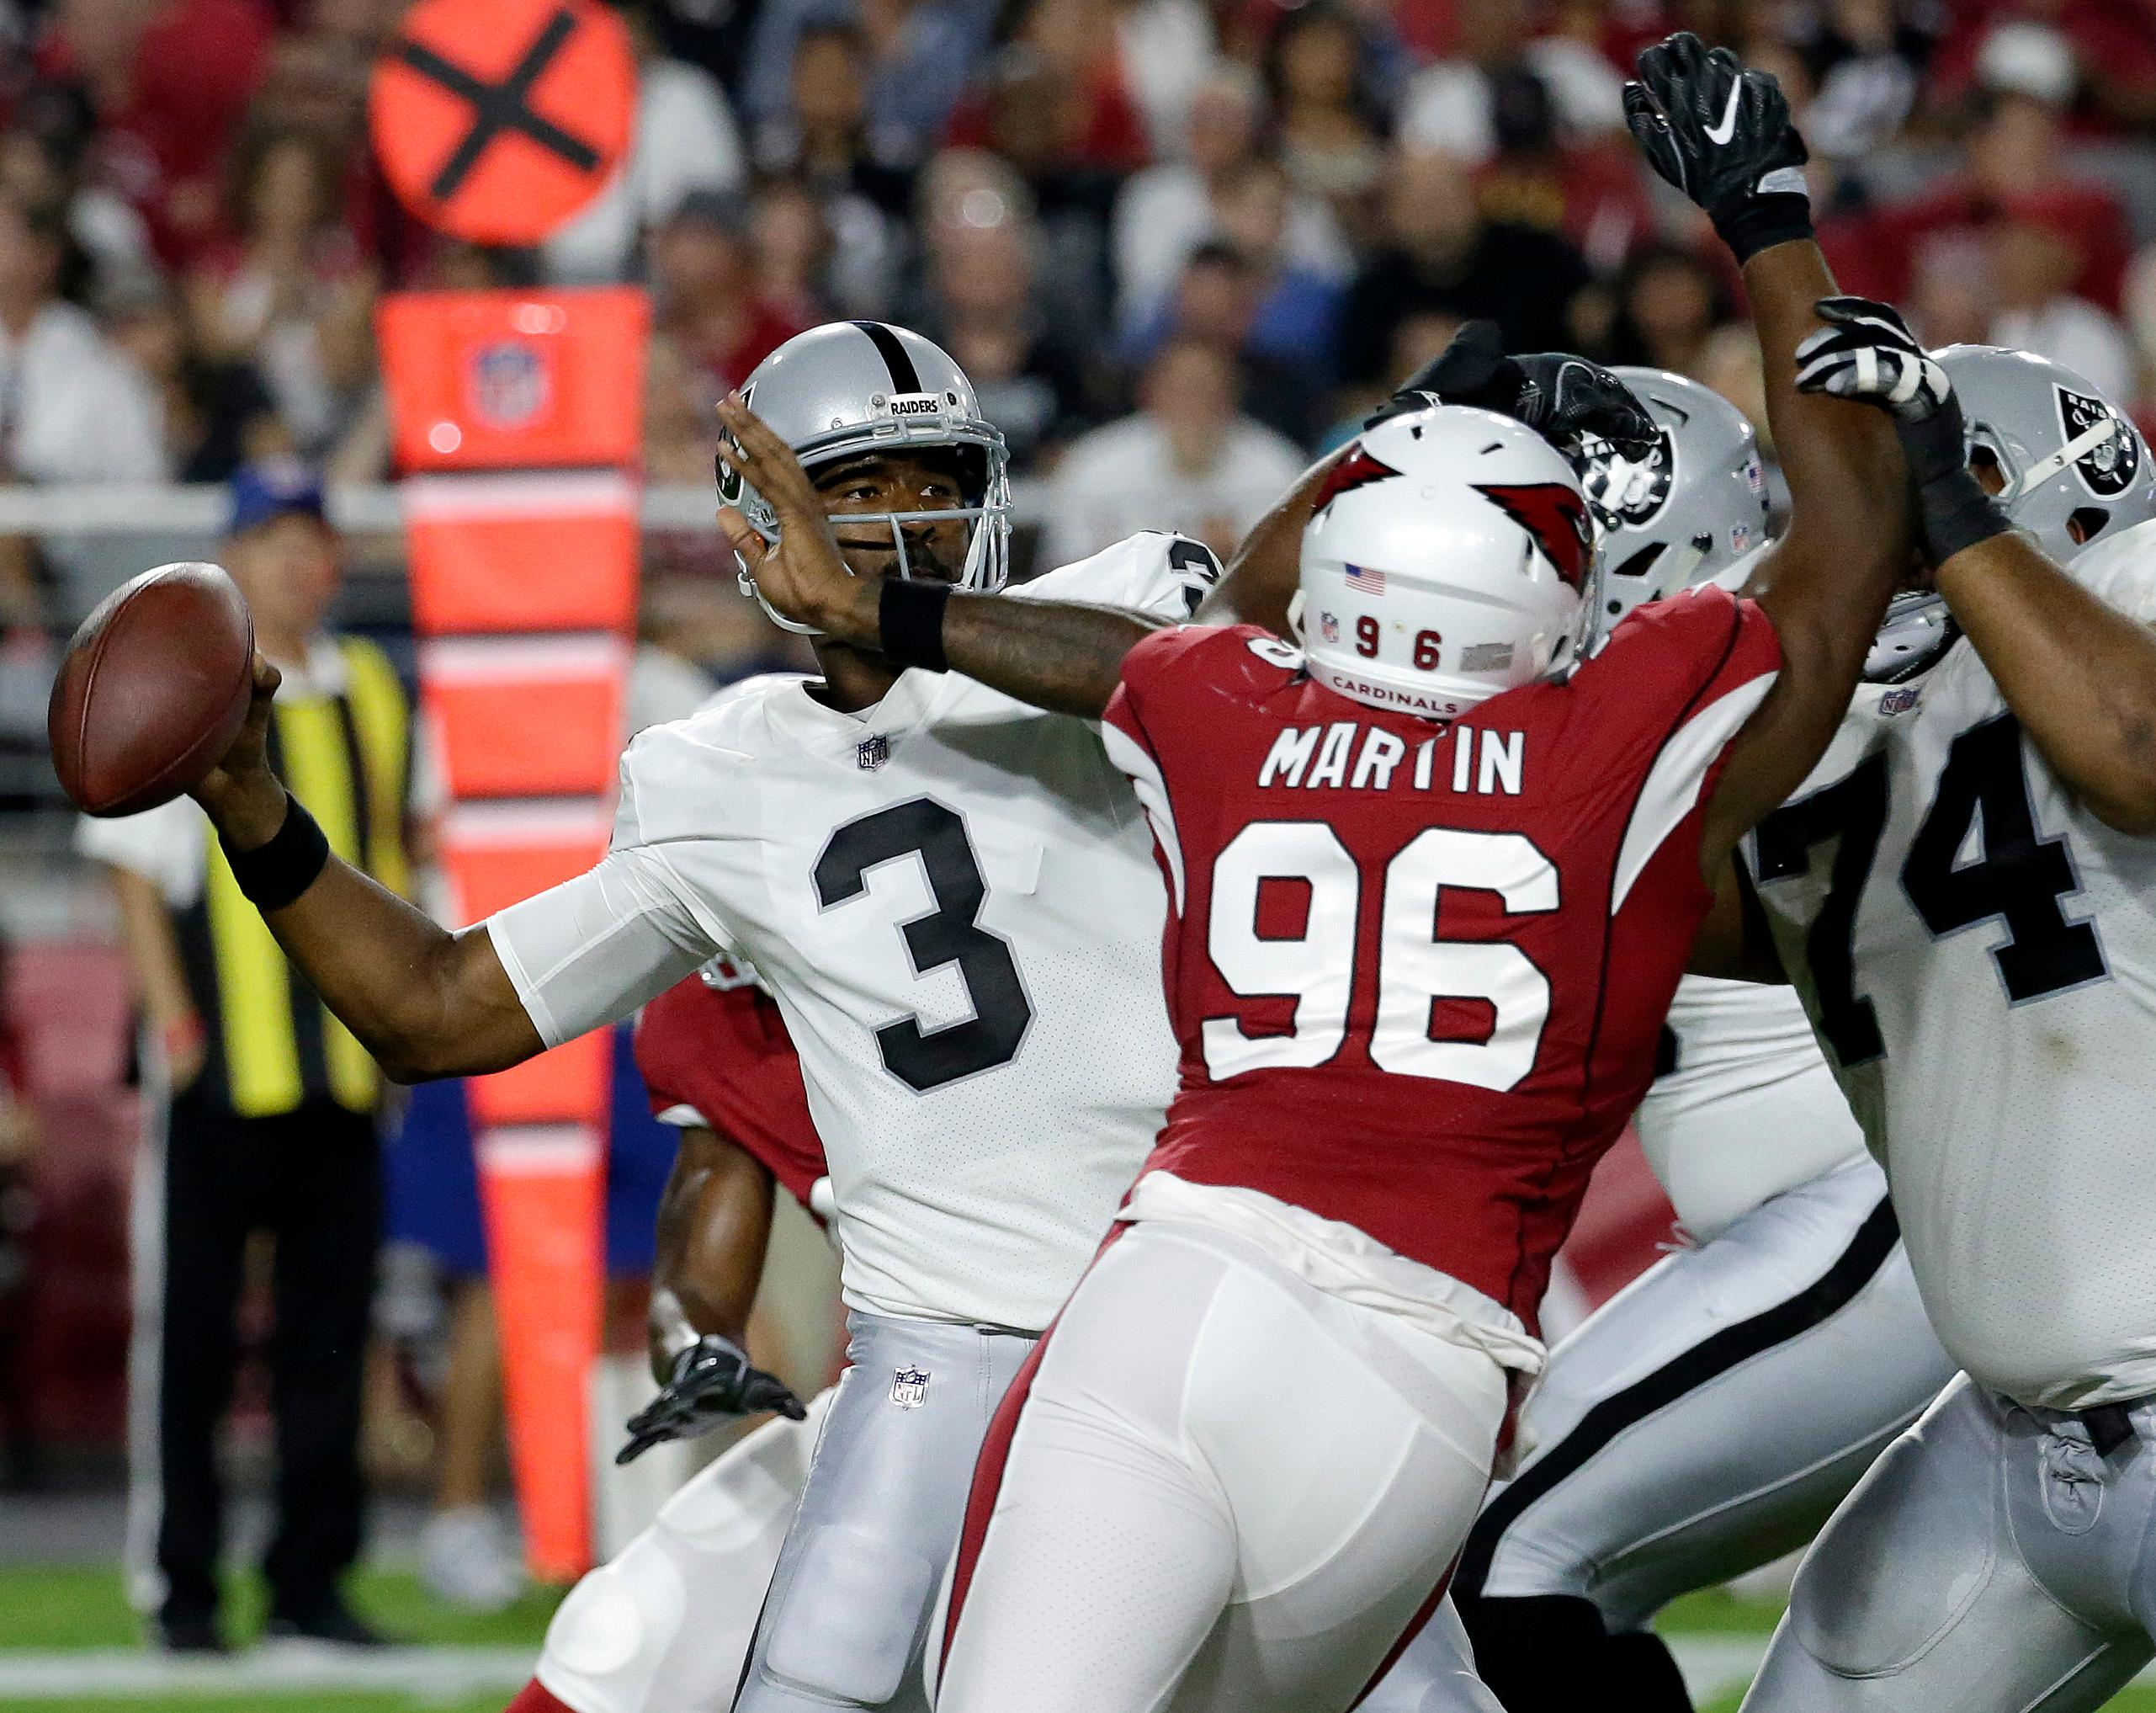 Oakland Raiders quarterback EJ Manuel (3) throws under pressure from Arizona Cardinals linebacker Kareem Martin (96) during the first half of an NFL preseason football game, Saturday, Aug. 12, 2017, in Glendale, Ariz. (AP Photo/Rick Scuteri)